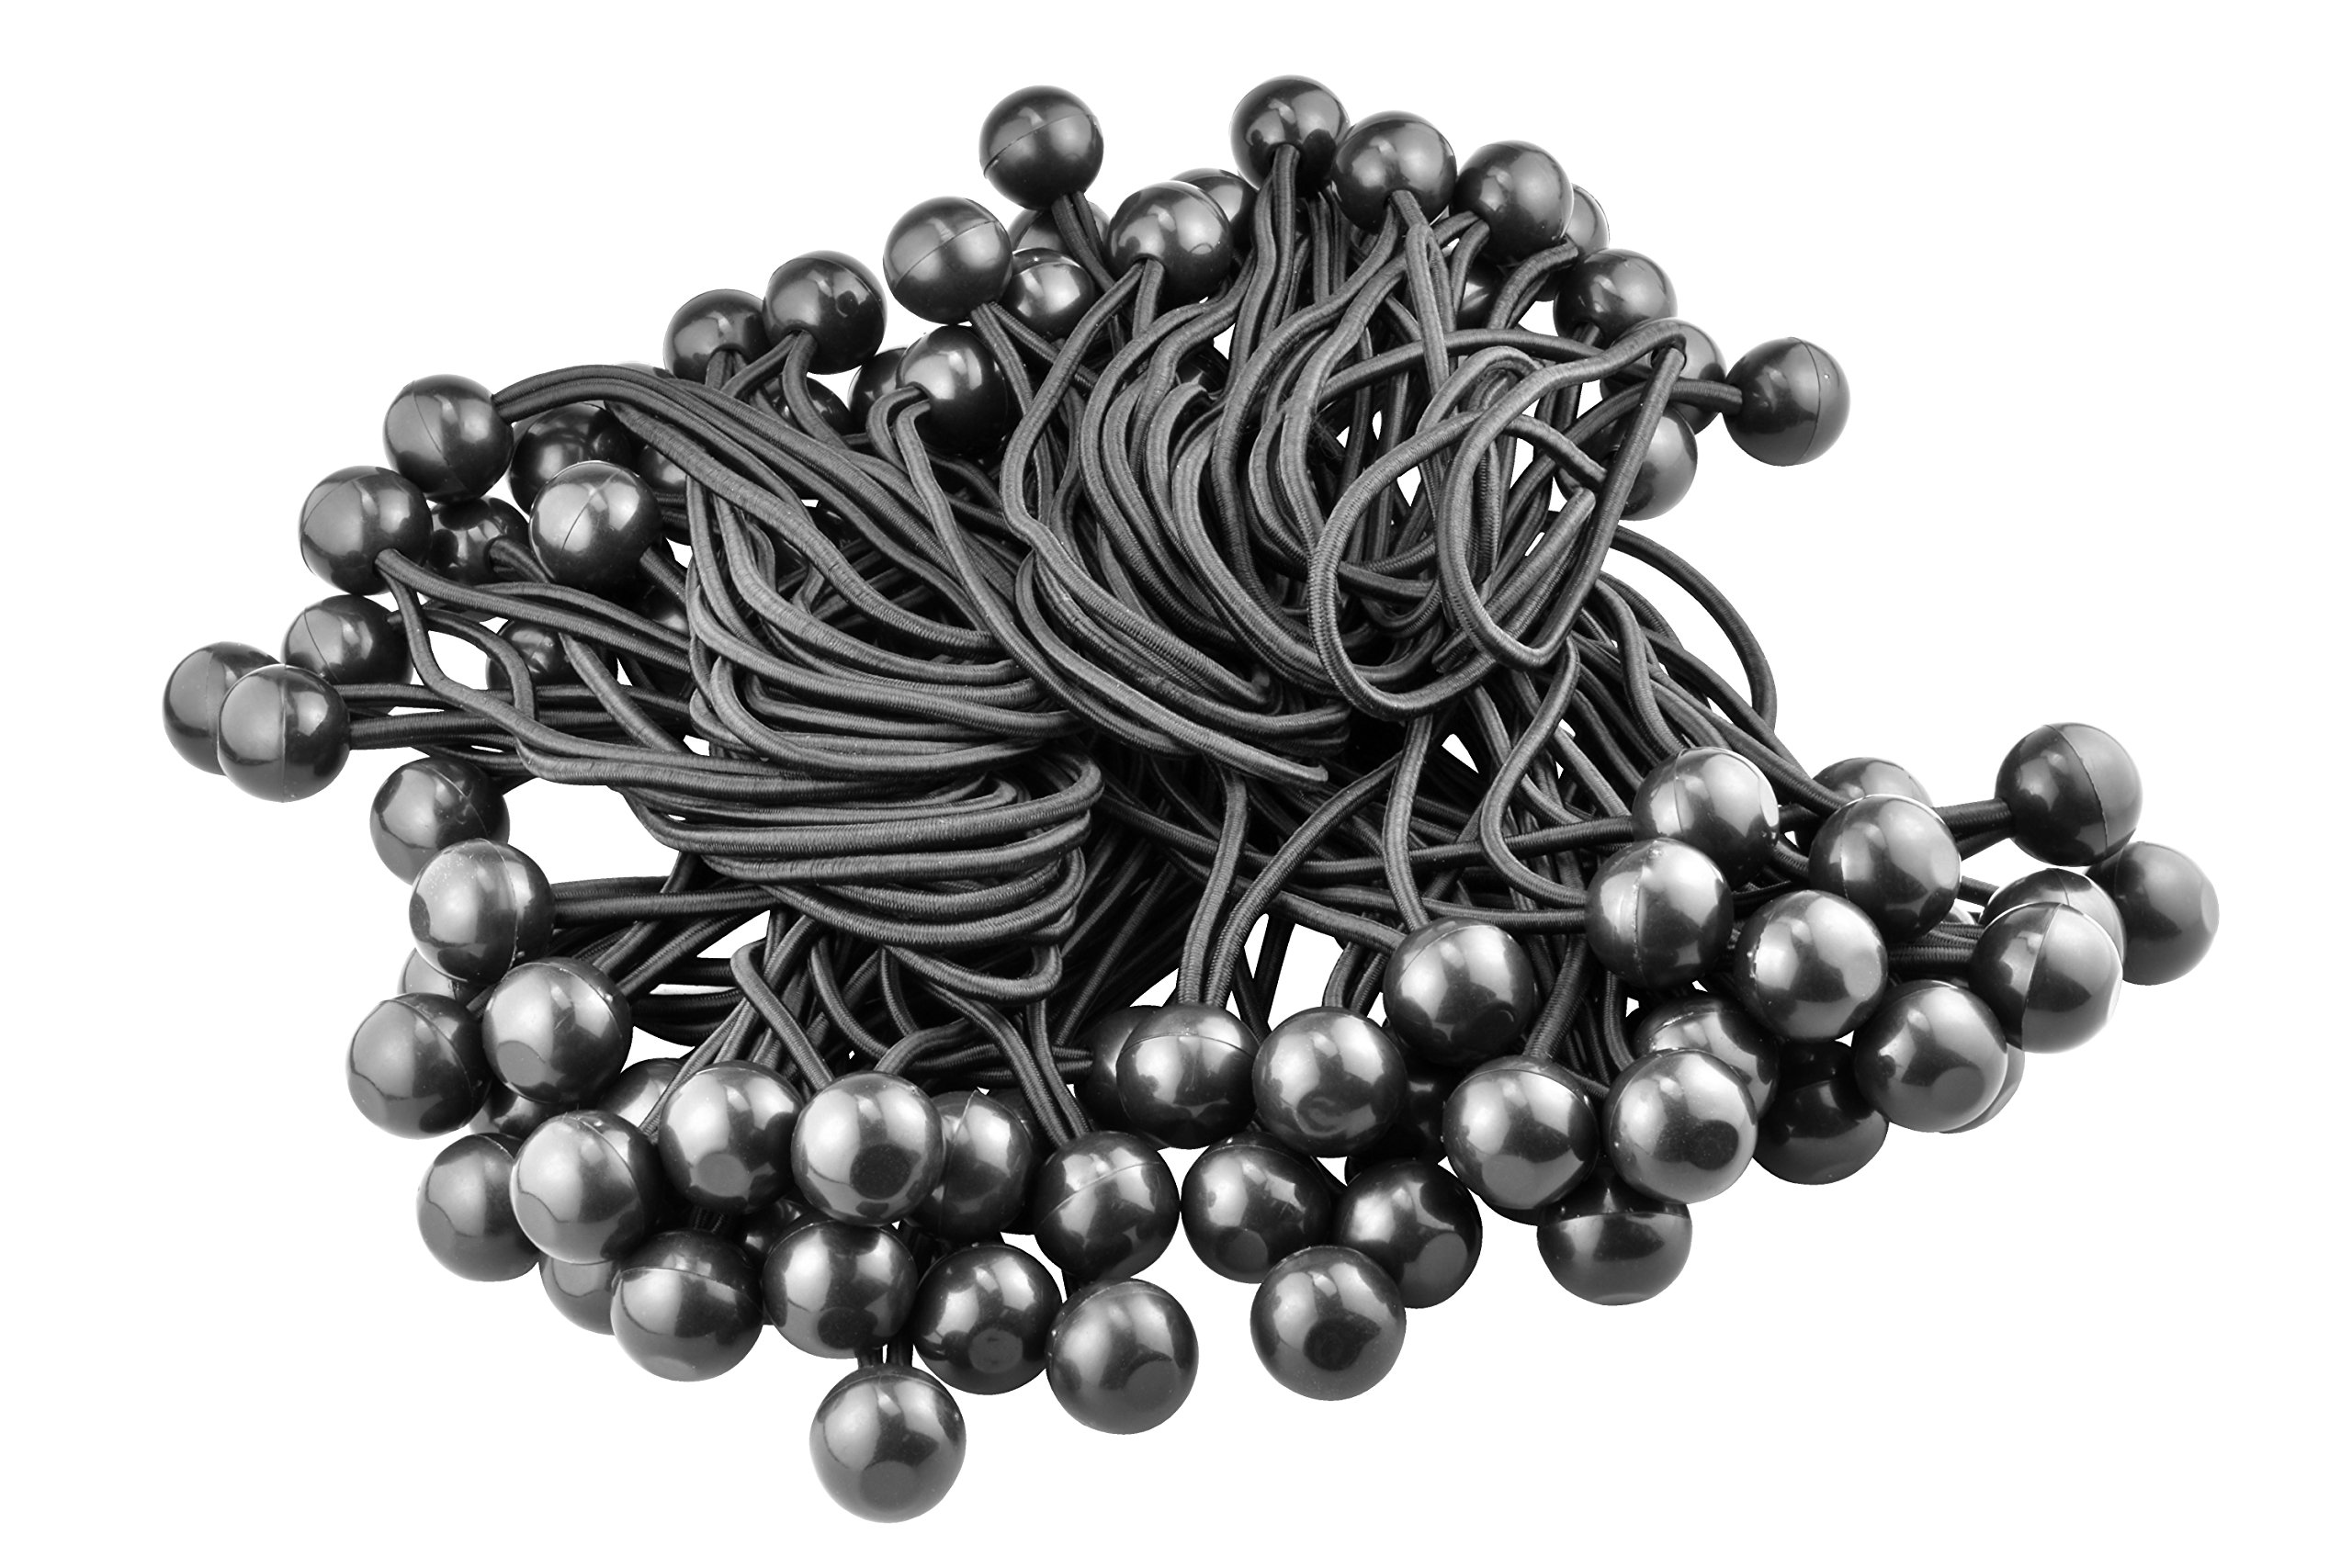 SE 6'' Black Bungee Stretch Cords with Balls (100 Count) by SE